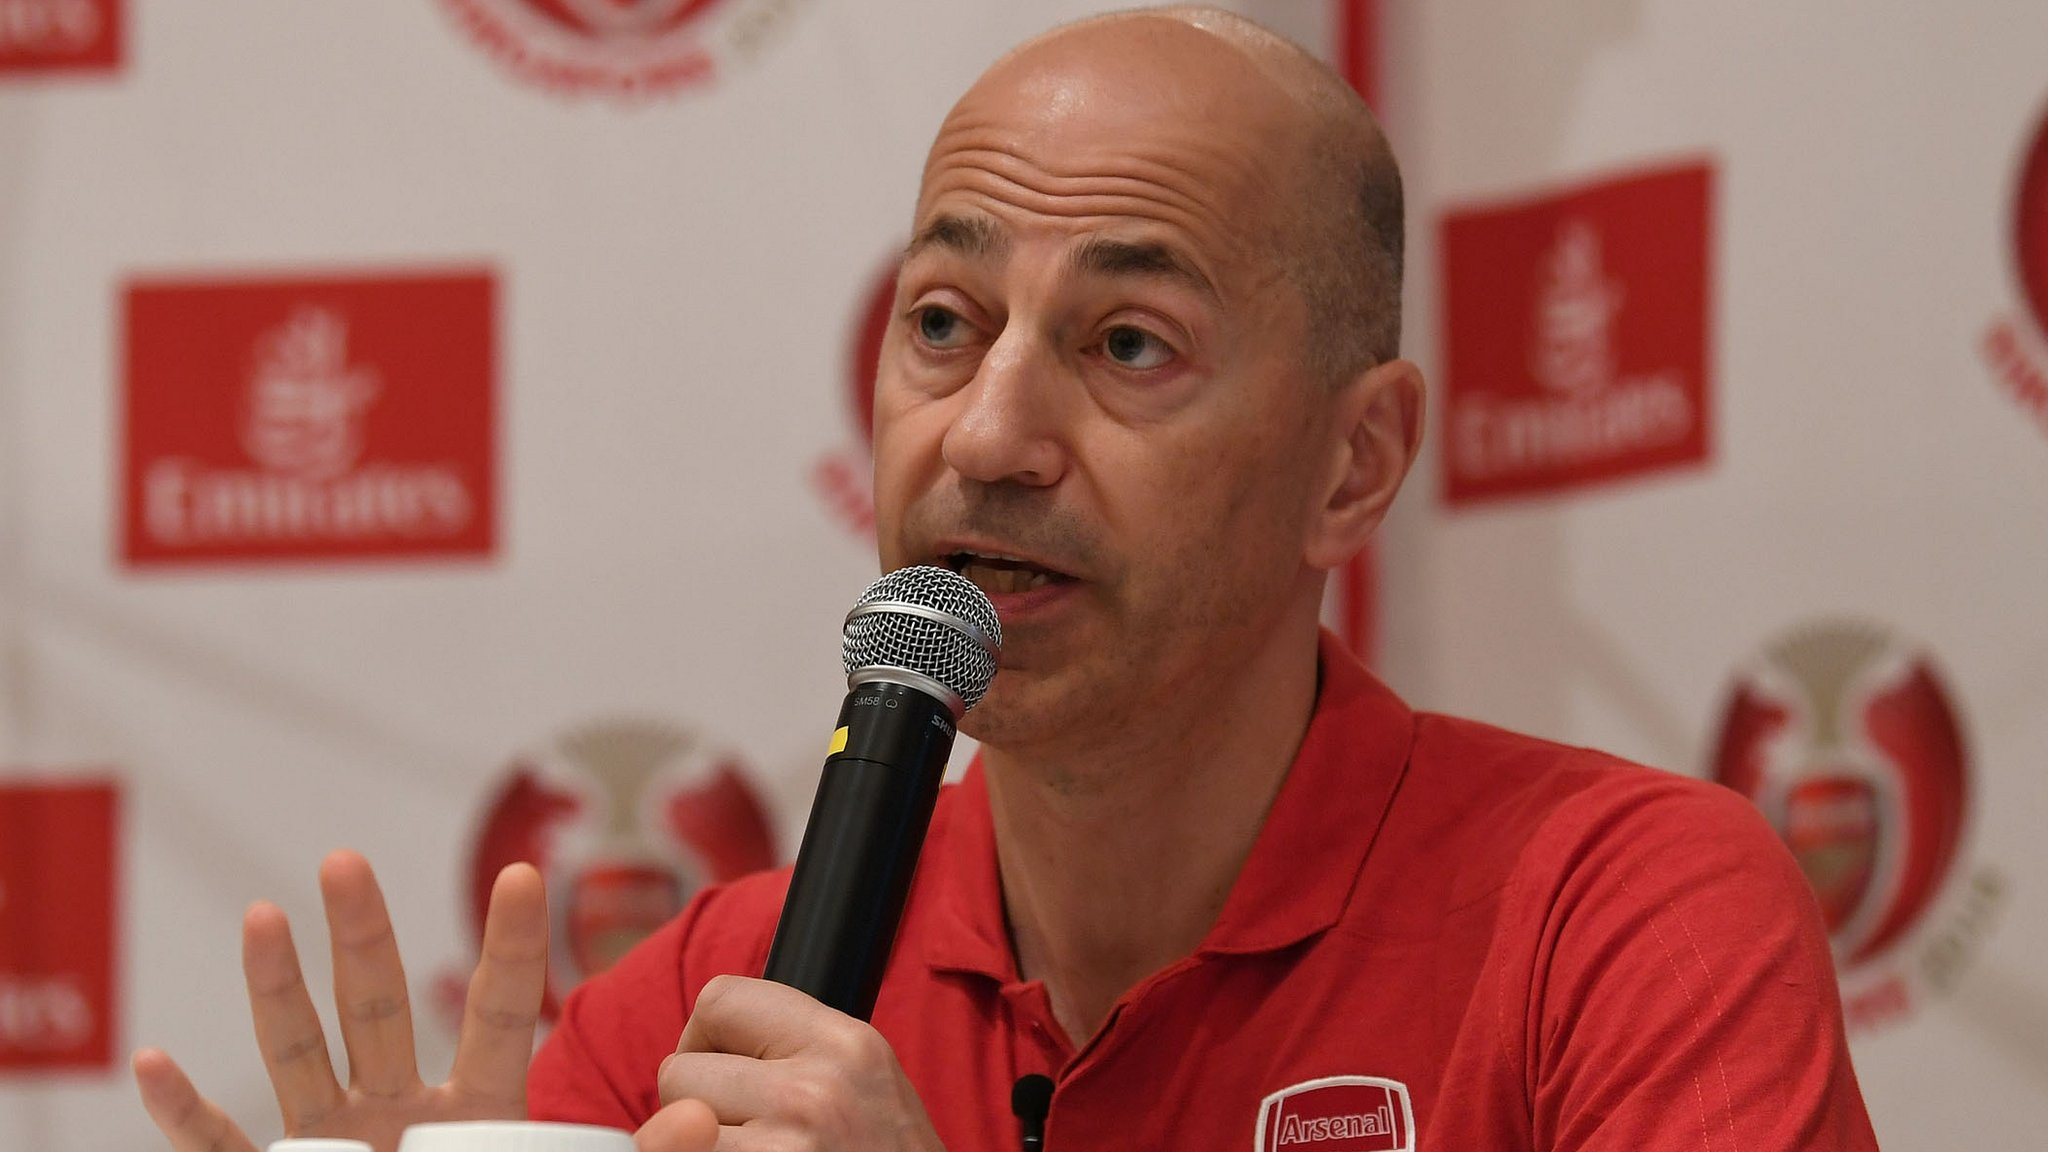 Arsenal chief Gazidis leaves for AC Milan